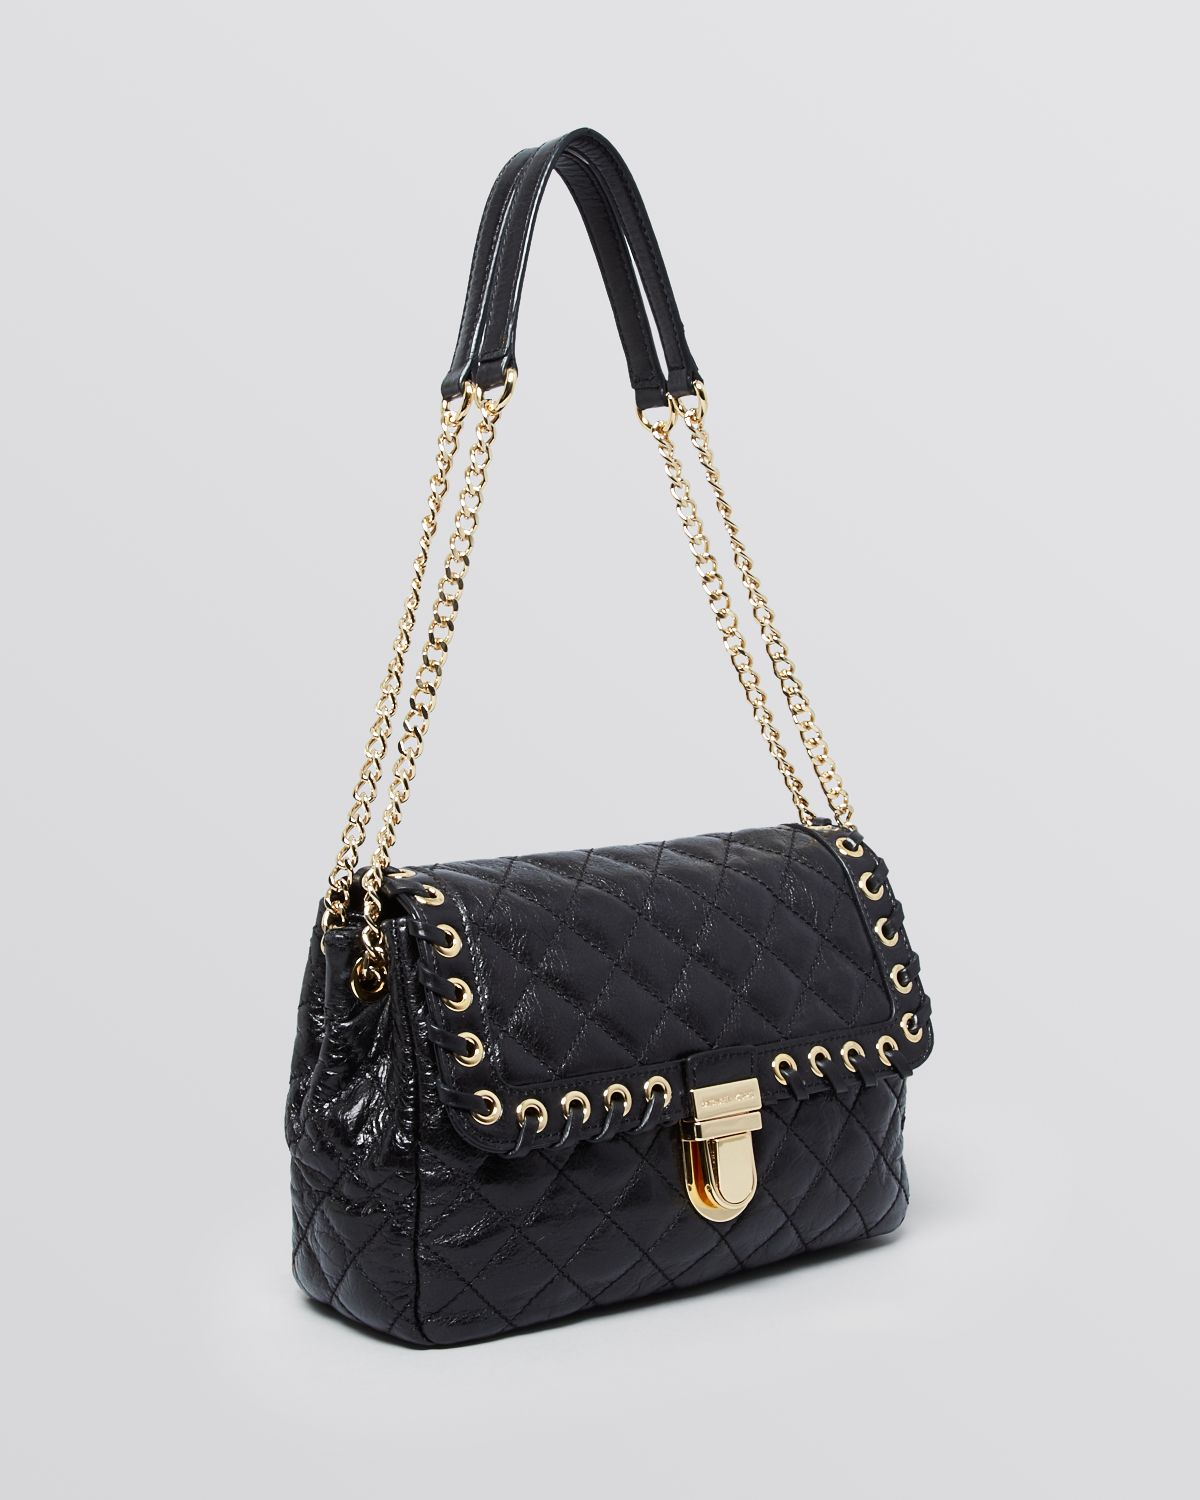 79dc300e3d93 Gallery. Previously sold at: Bloomingdale's · Women's Michael Kors Quilted  Bag Women's Michael By Michael Kors Sloan